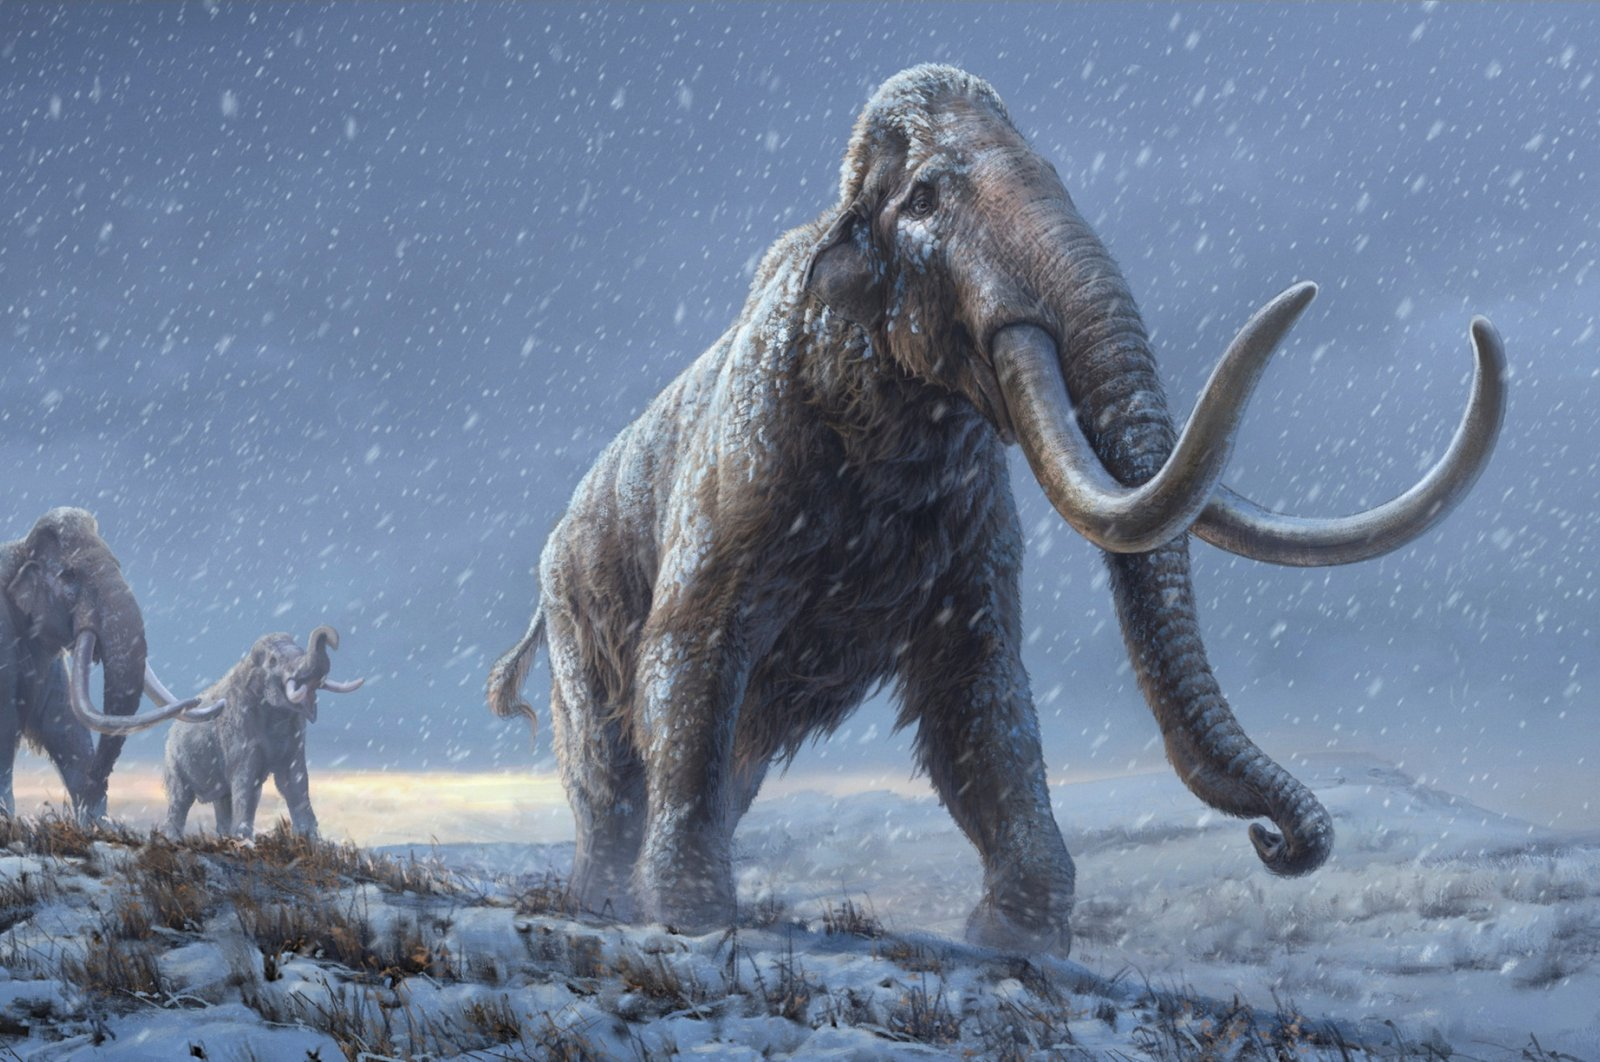 An artist's reconstruction shows the extinct steppe mammoth, an evolutionary predecessor to the woolly mammoth that flourished during the last Ice Age, based on the genetic knowledge gained from the Adycha mammoth specimen that from which DNA, more than 1 million years old, was extracted. (Reuters)